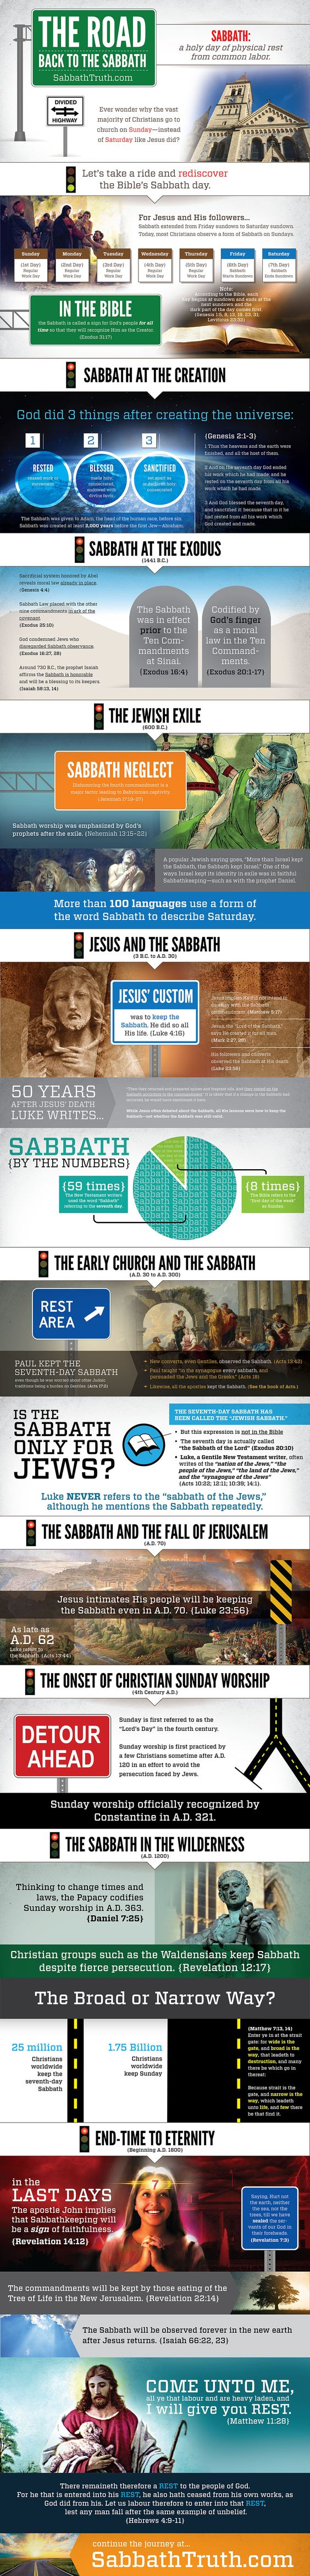 """Why do Christians go to church on Sunday instead of Saturday, like Jesus did? What would Jesus do today? The """"Road Back to the Sabbath"""" infographic examines intriguing Bible passages and Sabbath history to answer these questions and more. It's all designed to get you thinking more deeply about a Bible subject that you might just be taking for granted ..."""